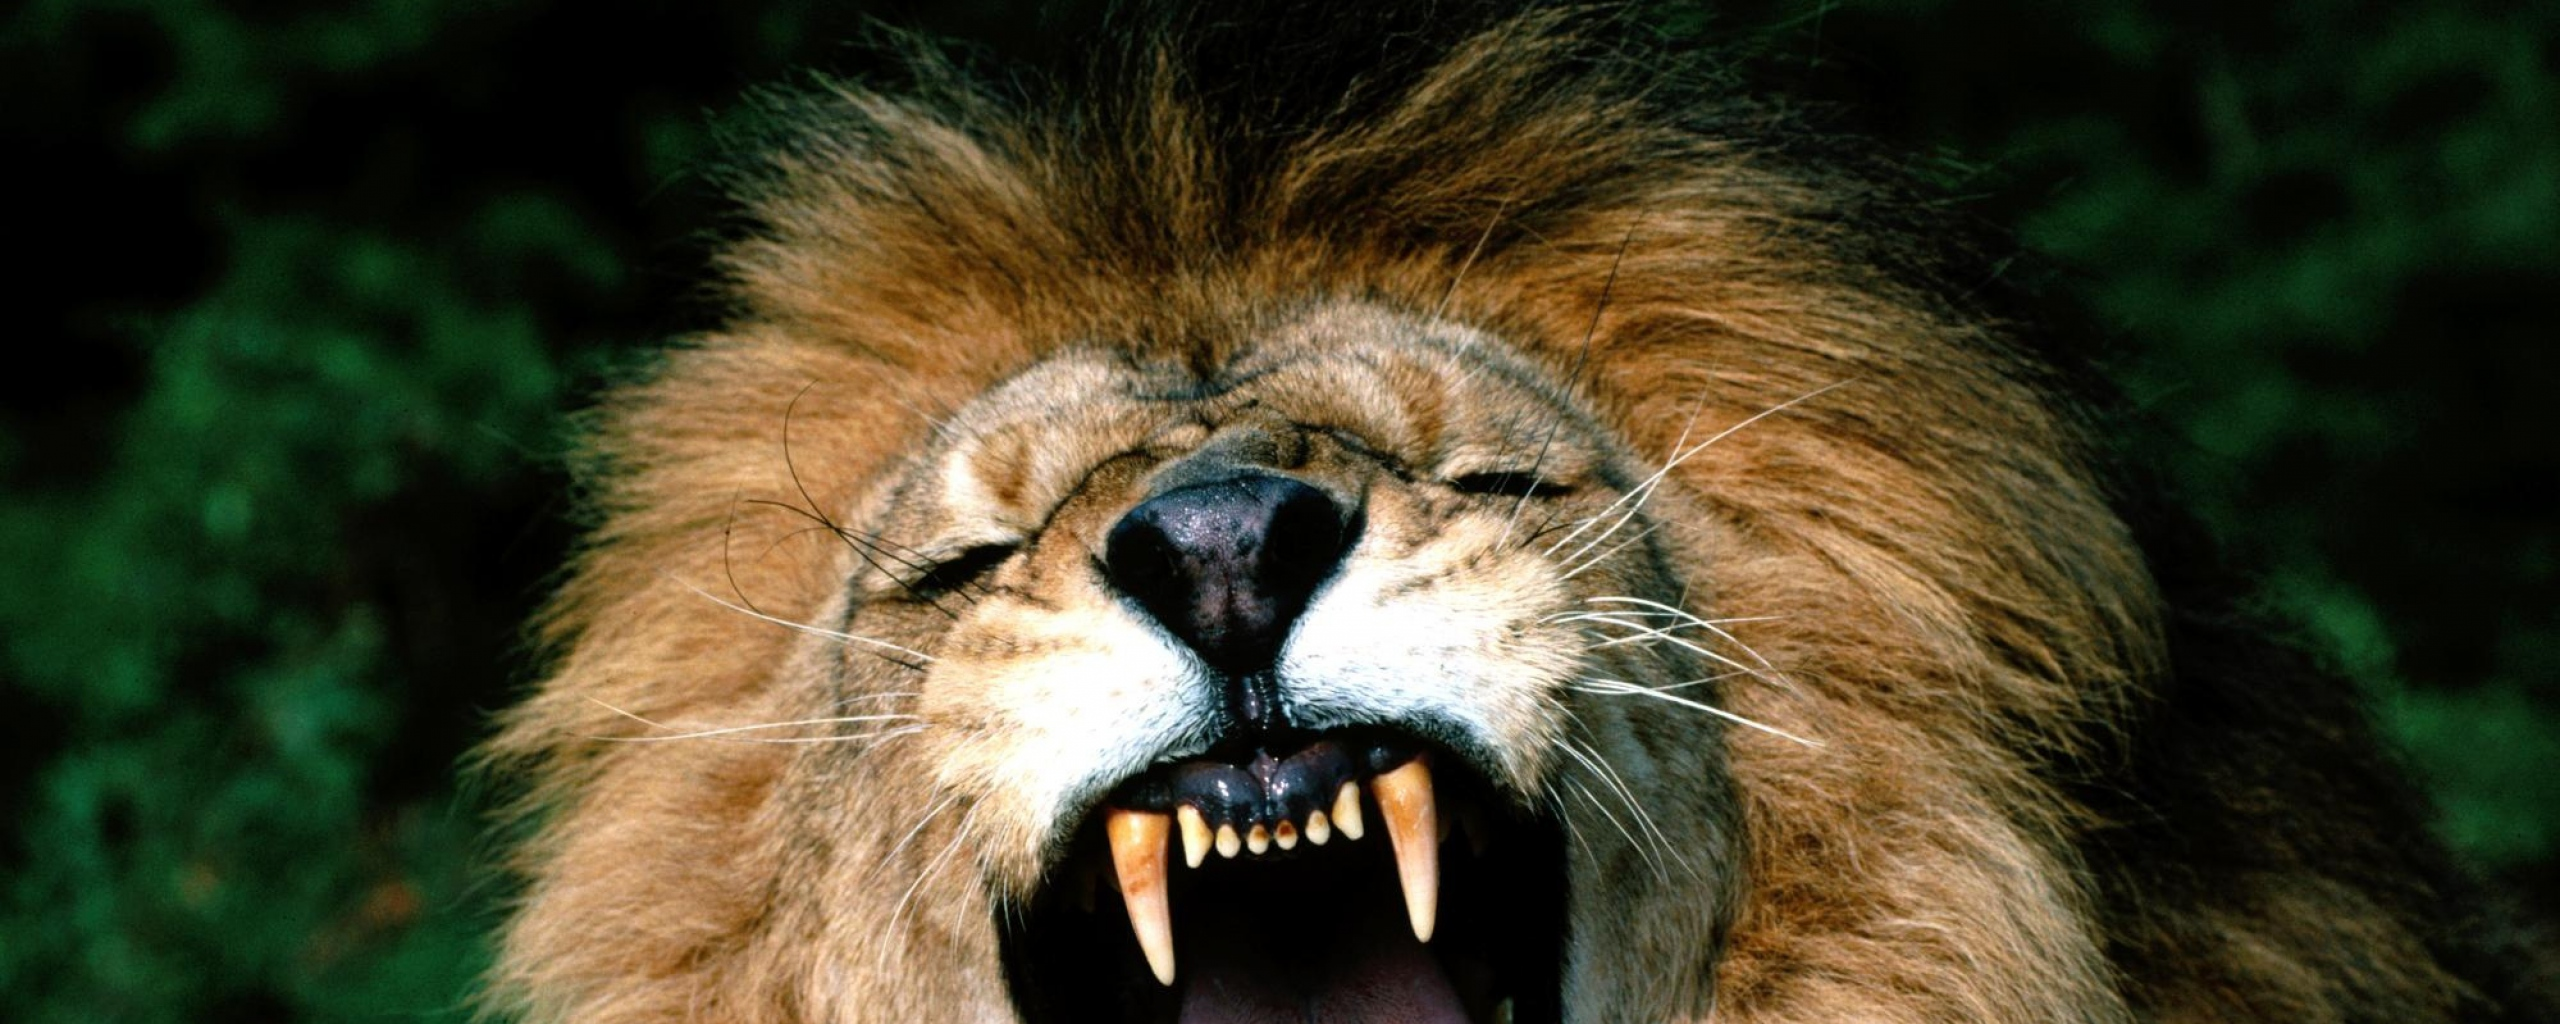 Download Angry Lion Face Wallpaper Gallery